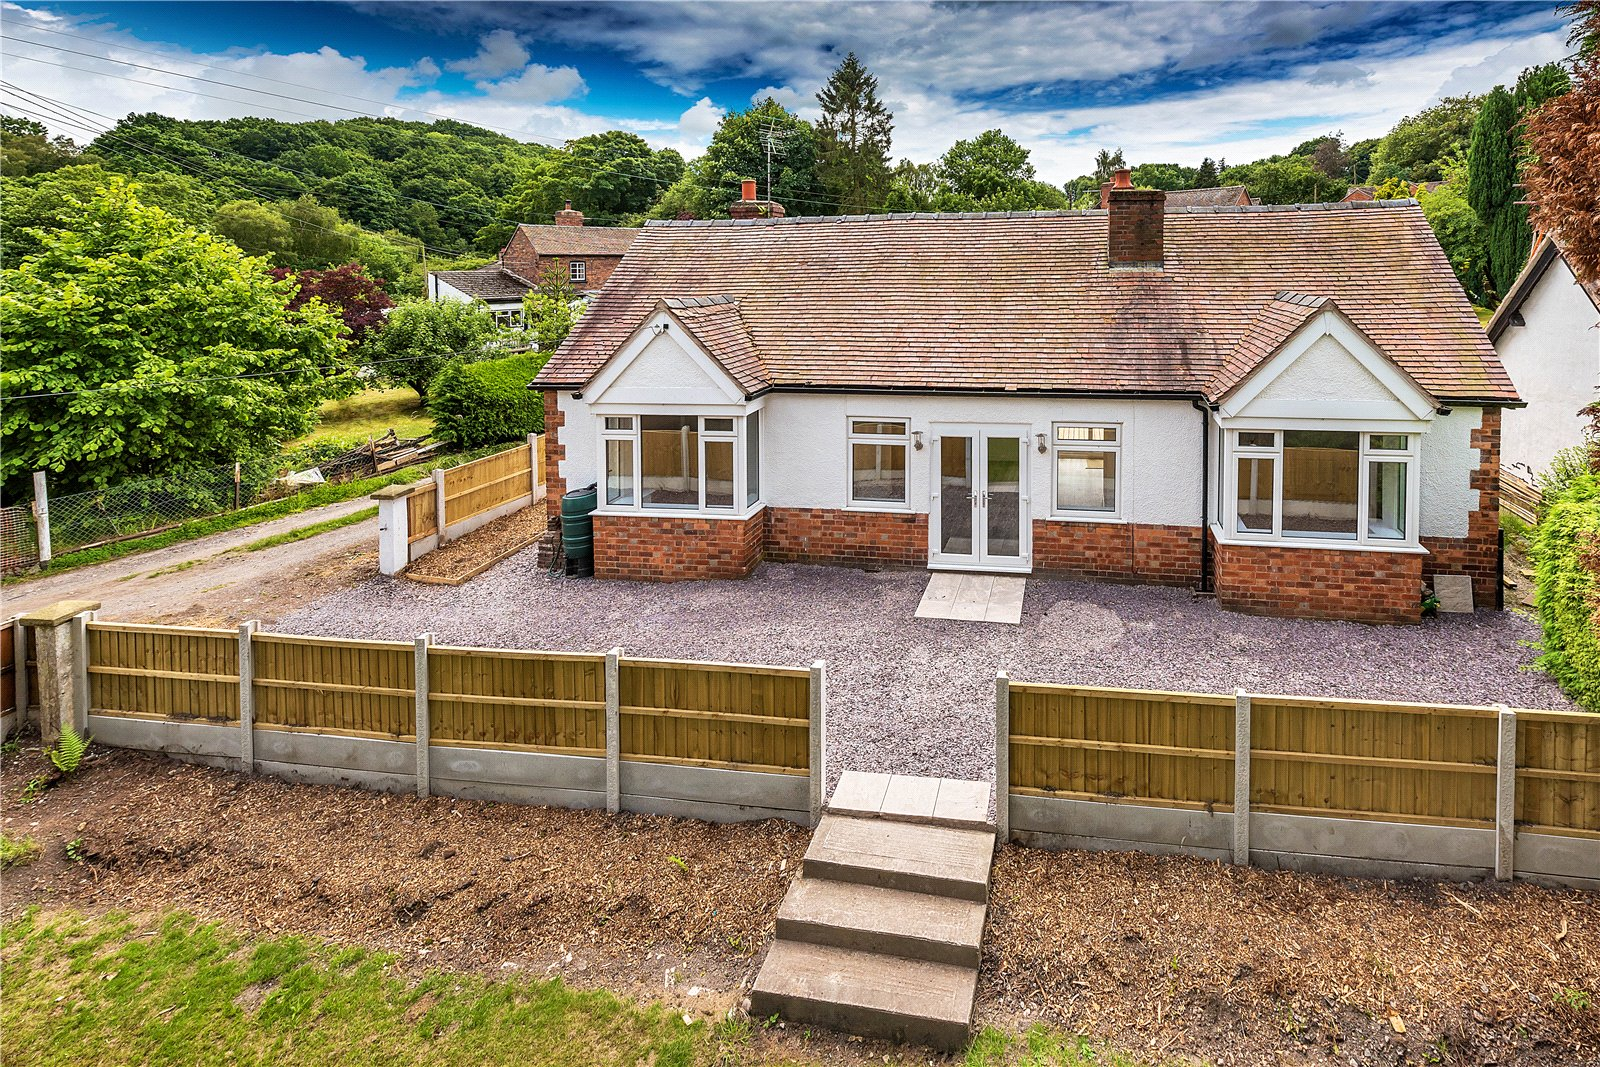 3 Bedrooms Detached Bungalow for sale in 96a The Knowle, Jackfield, Shropshire, TF8